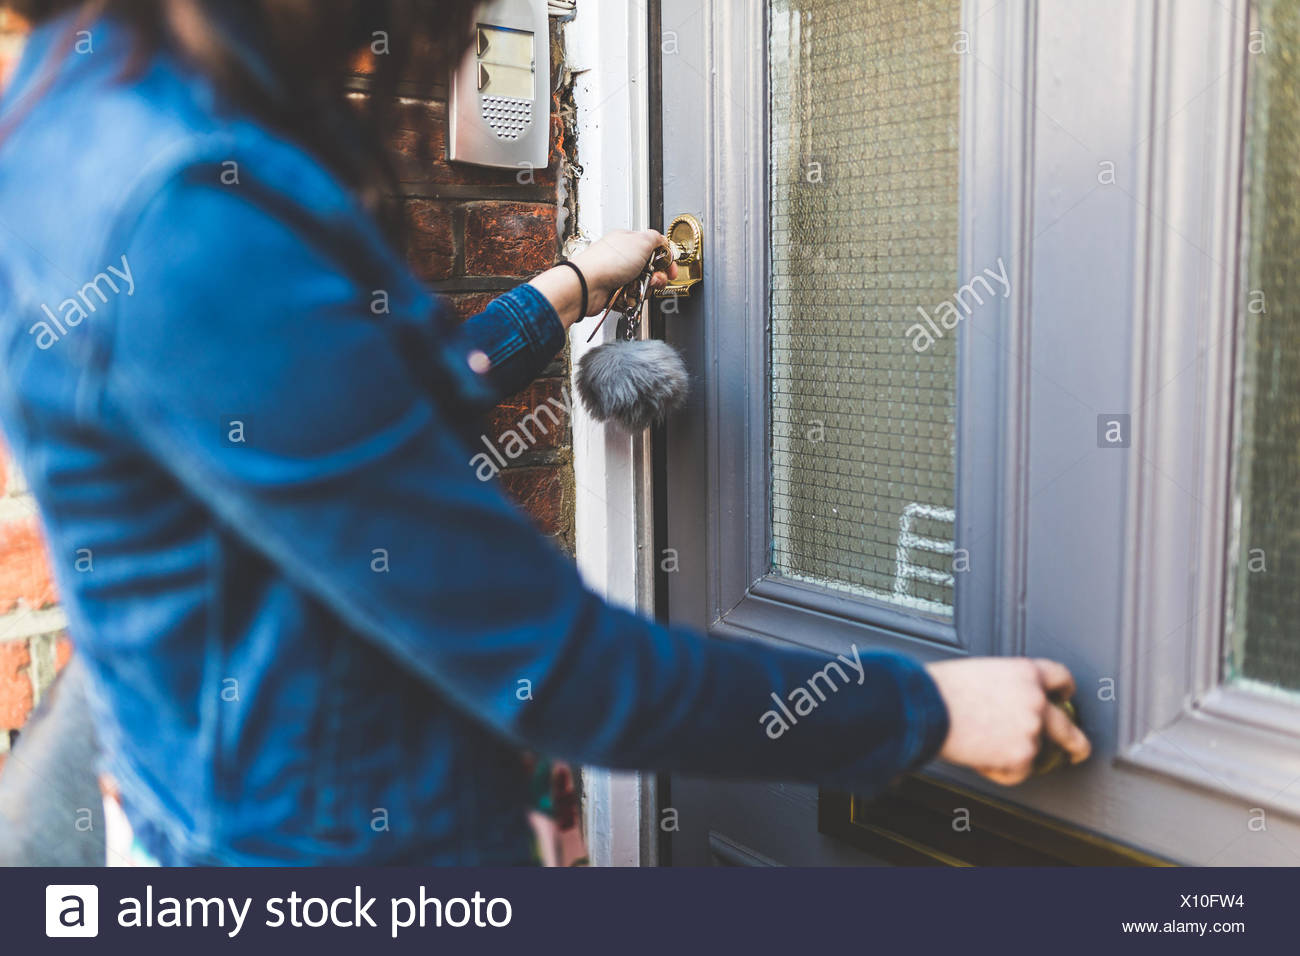 Young woman leaving house, locking front door, mid section - Stock Image